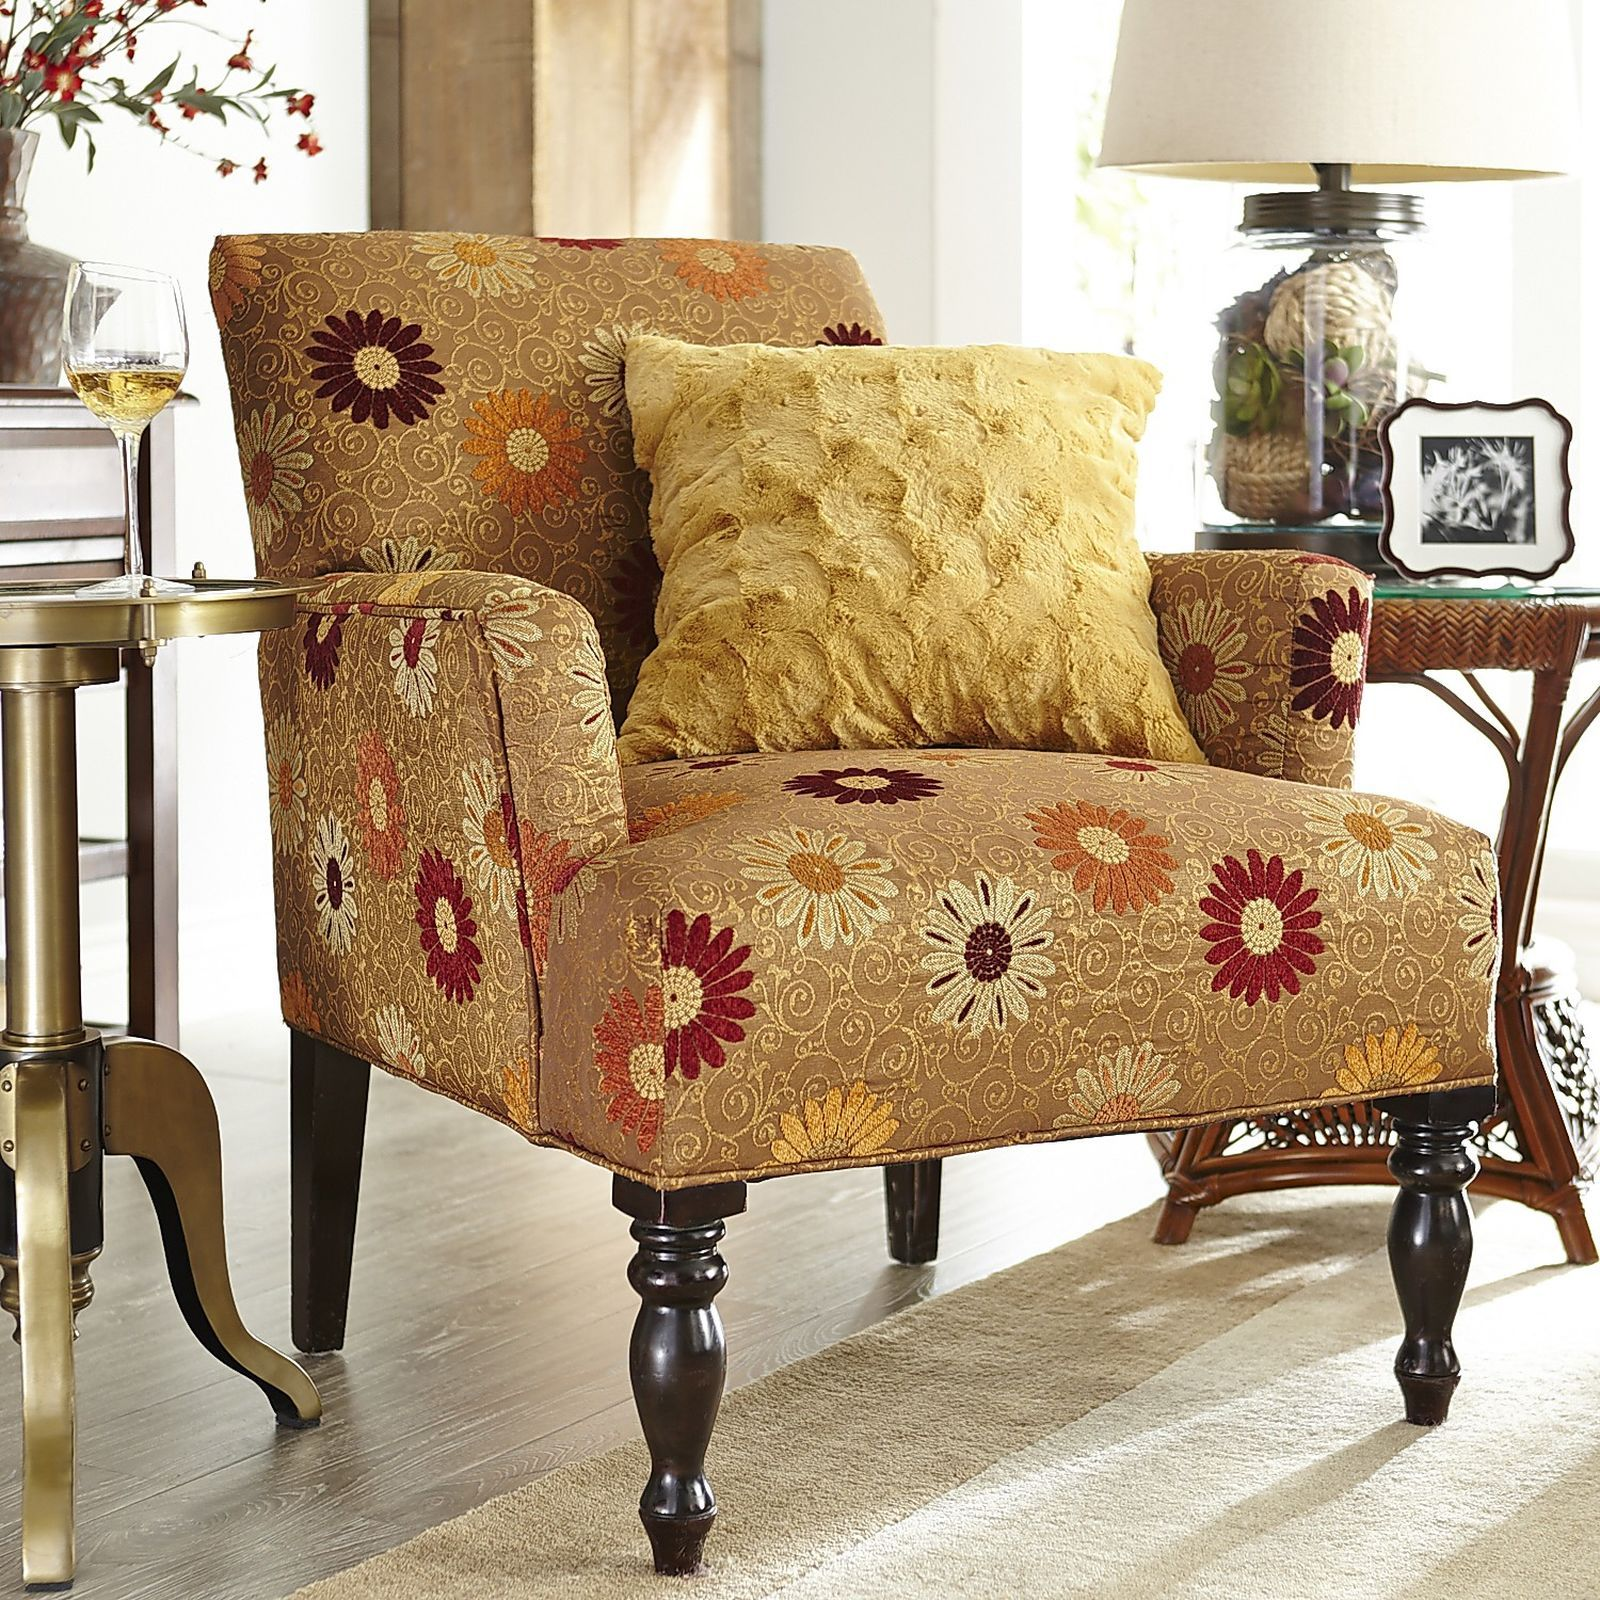 Liliana Armchair Daisy Gold Chair Accent Chairs Armchairs Comfortable Living Room Chairs